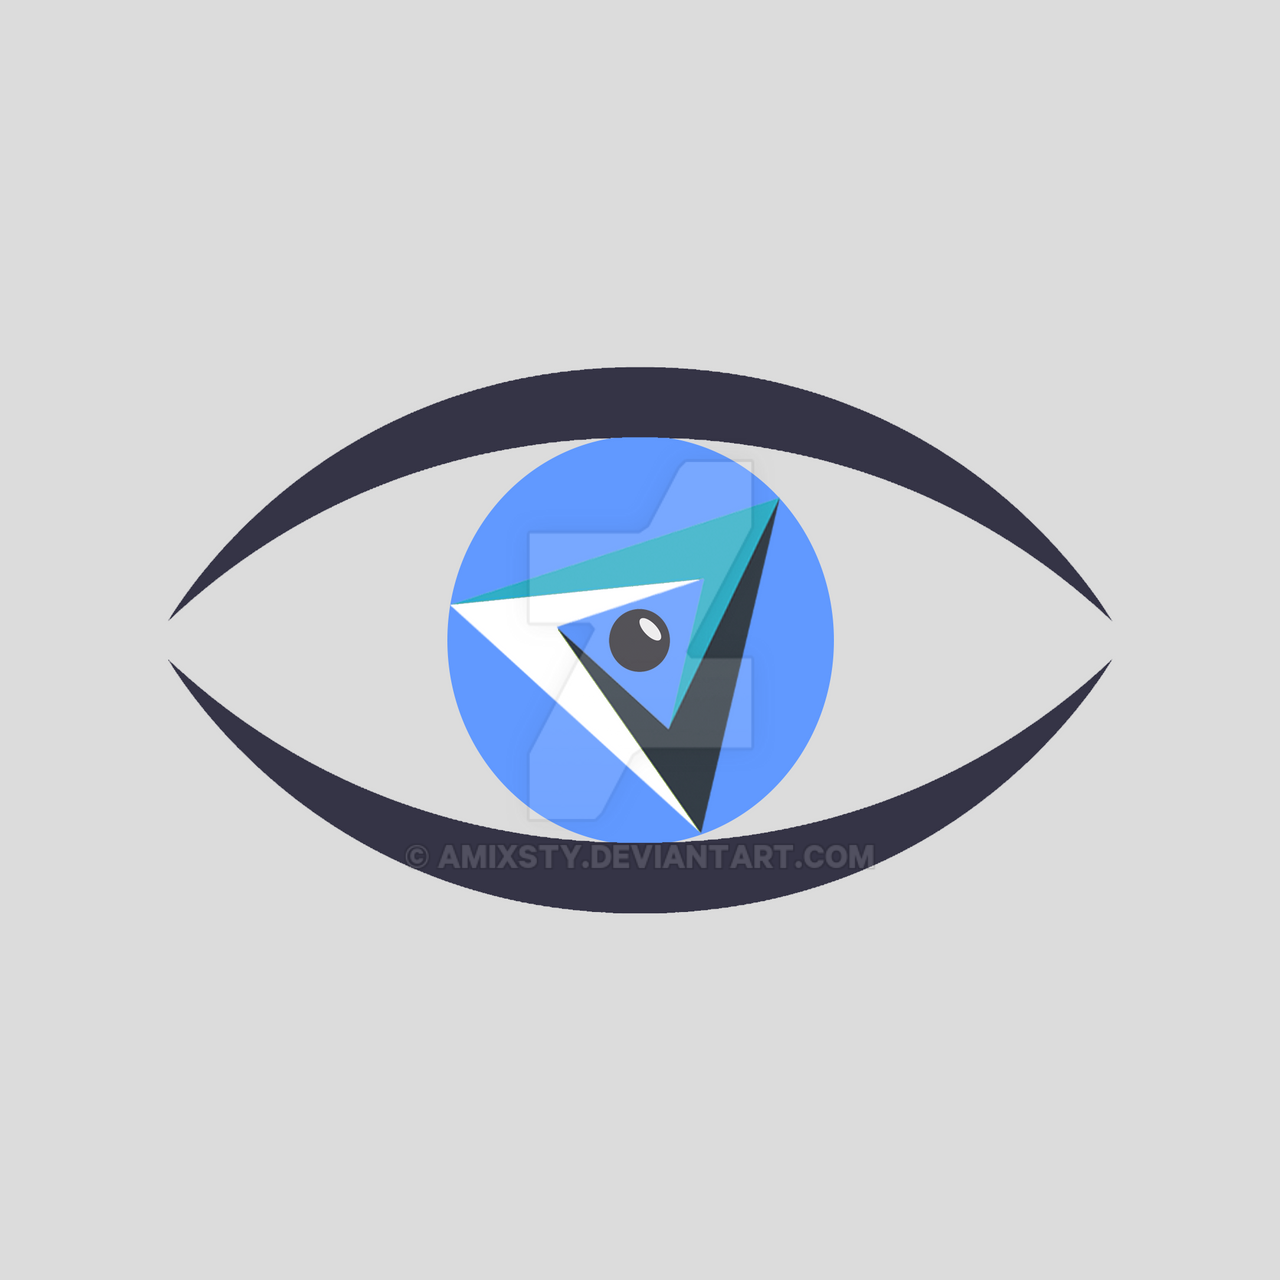 security logo by amixsty on deviantart rh amixsty deviantart com security logos vector security logos pictures